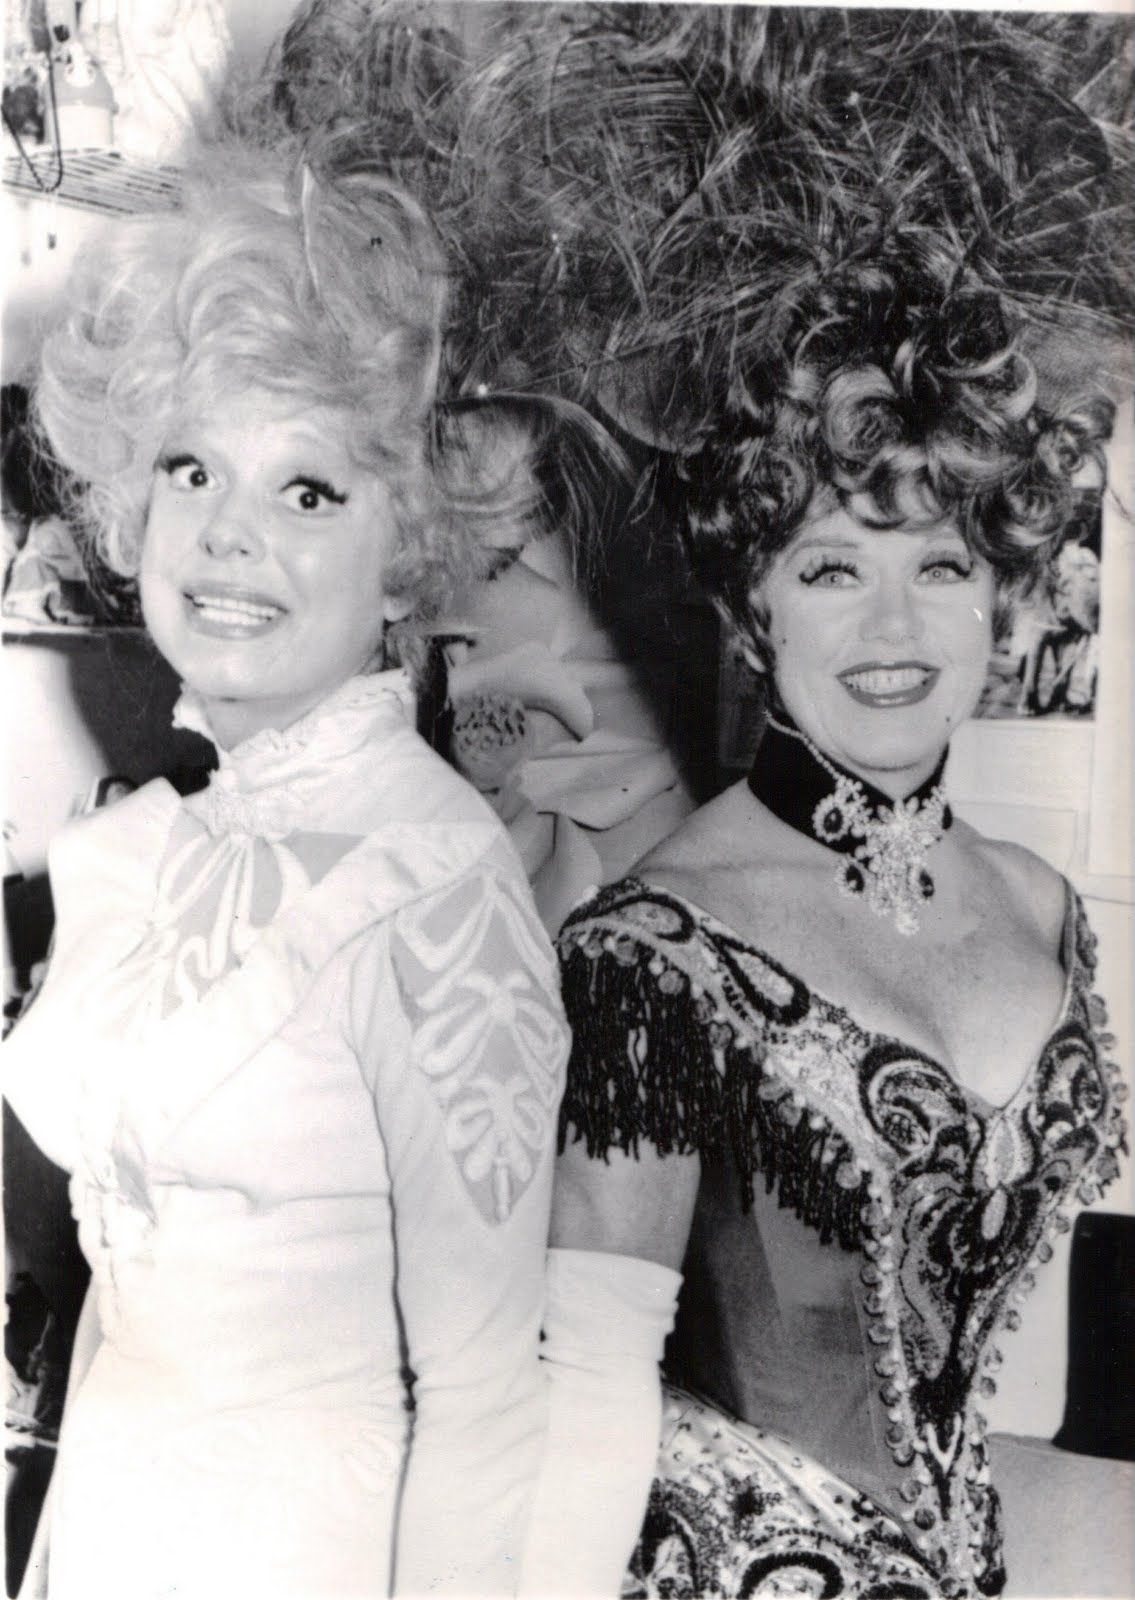 Ginger taking over for Carol Channing in Hello, Dolly!